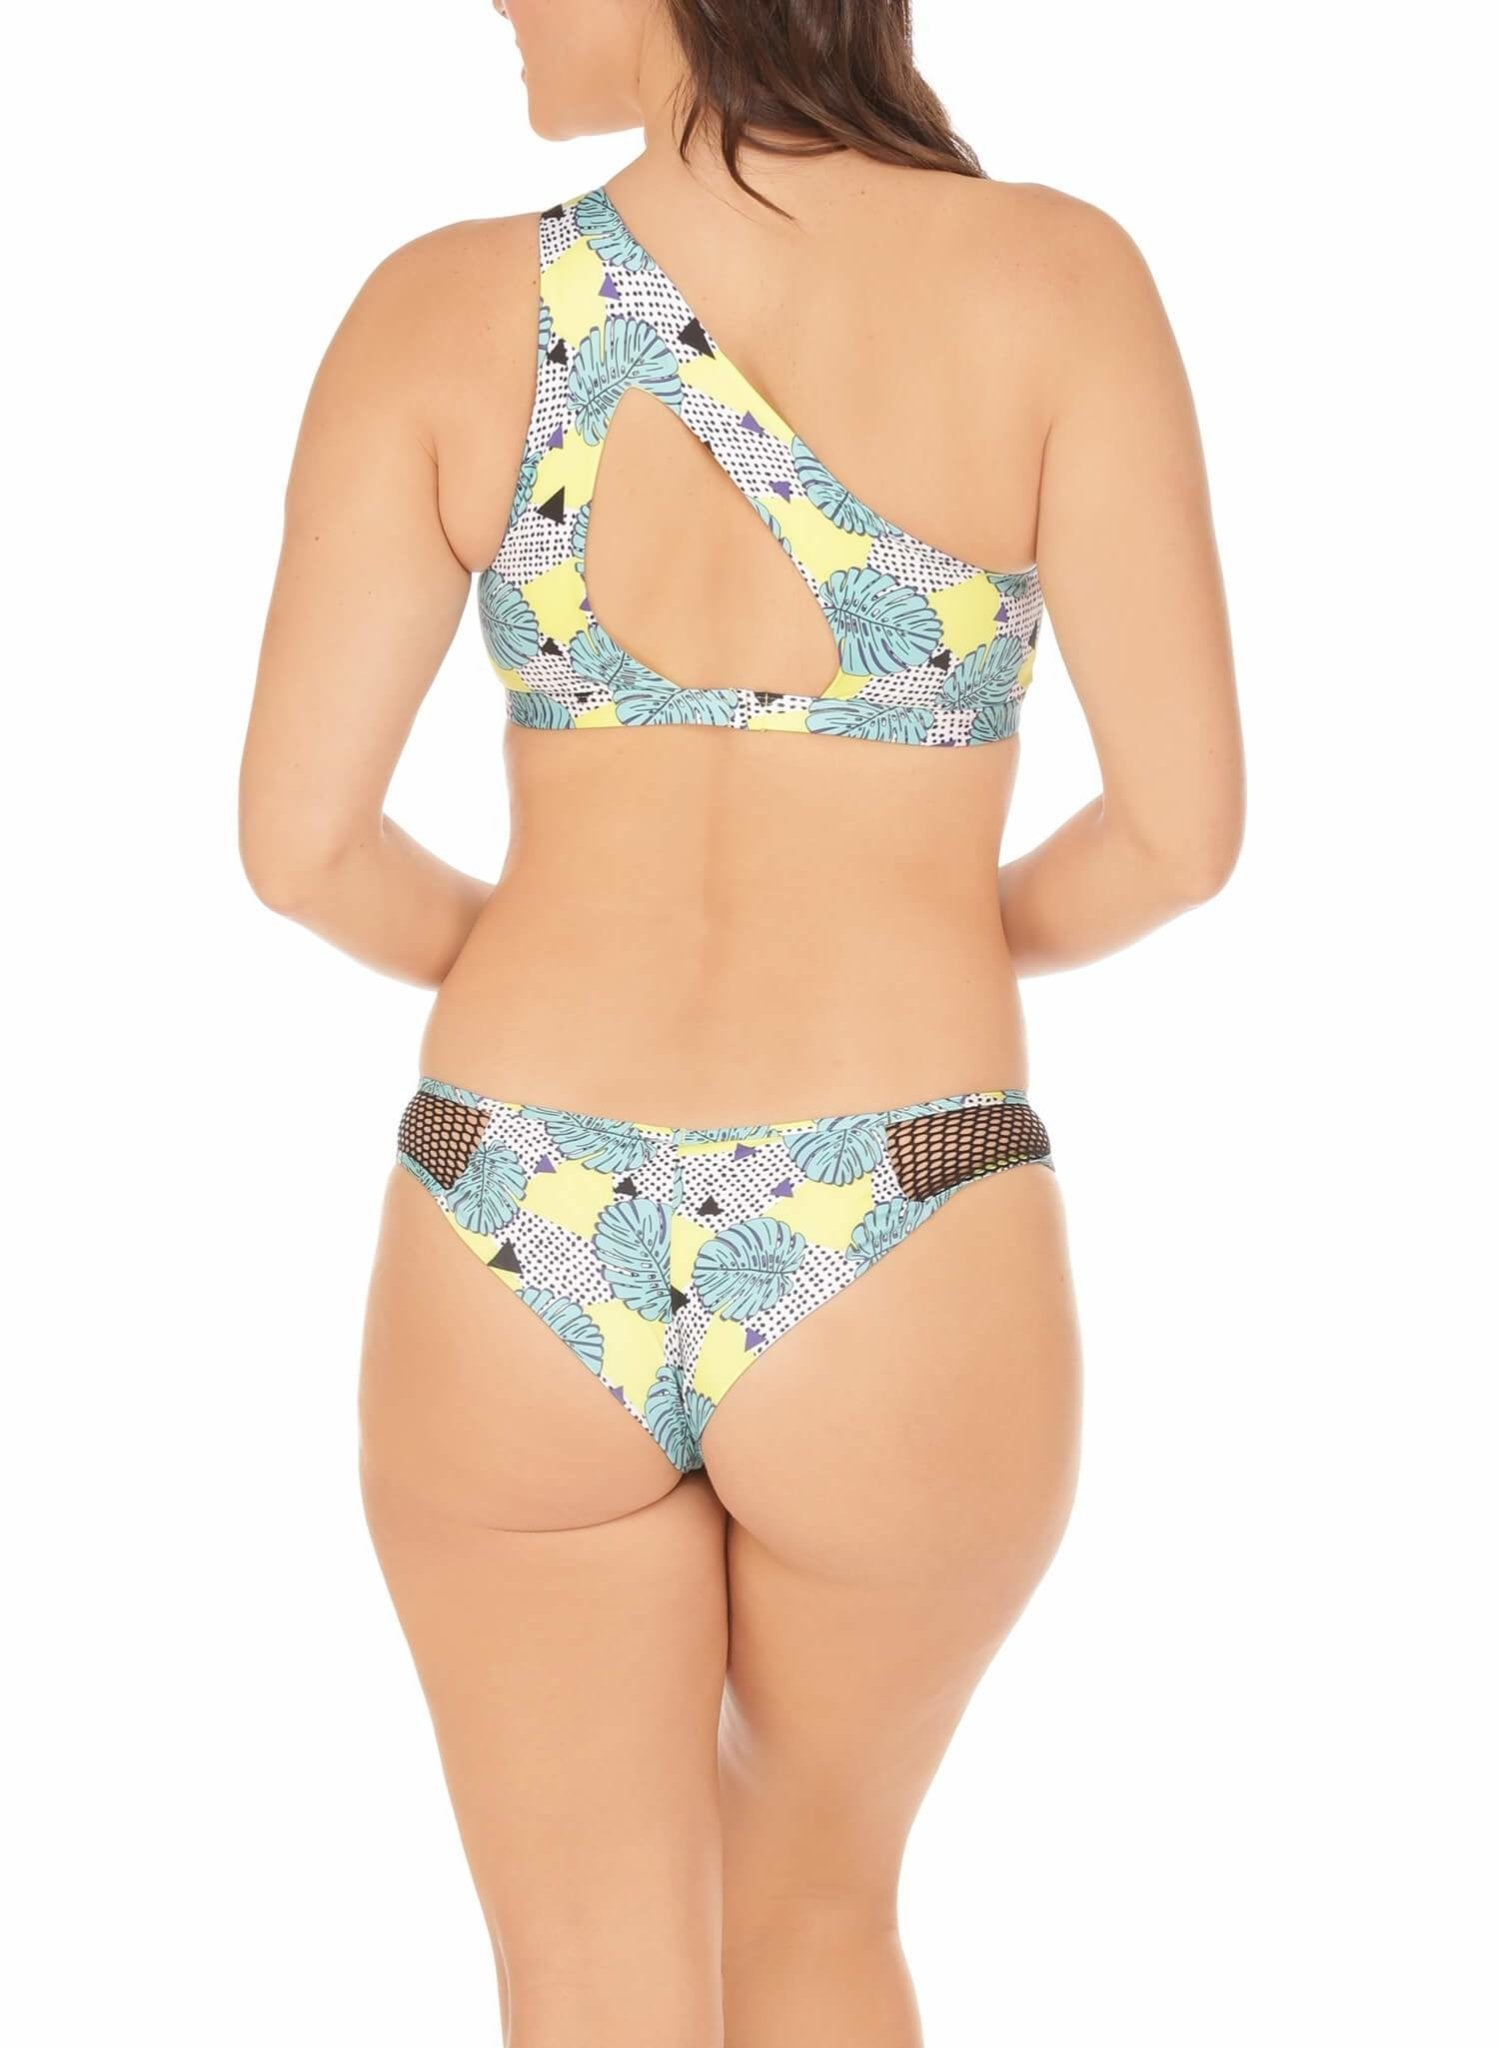 Lanika Bottom - Cheeky - Neon Palm